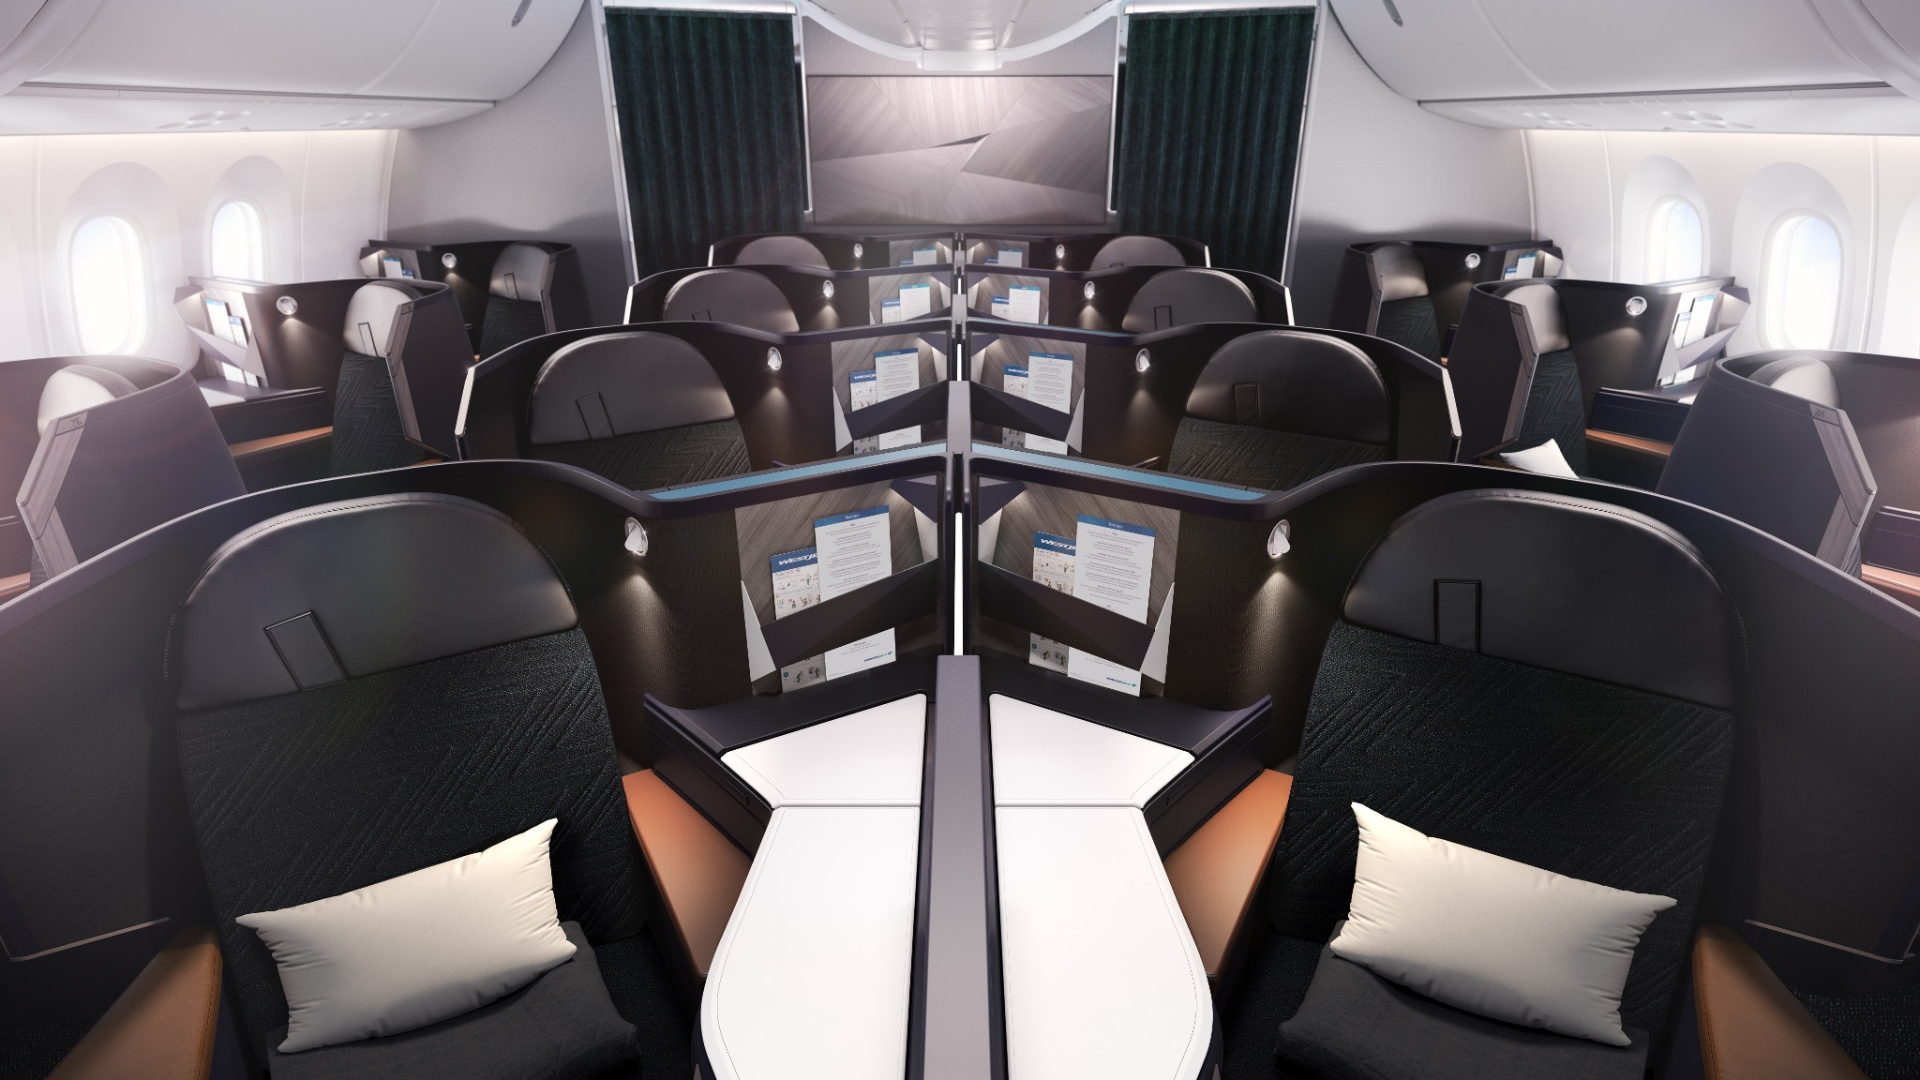 TAKING CARE OF BUSINESS. Meet WestJet's first-ever Business Cabin on board its new 787-9 Dreamliner.